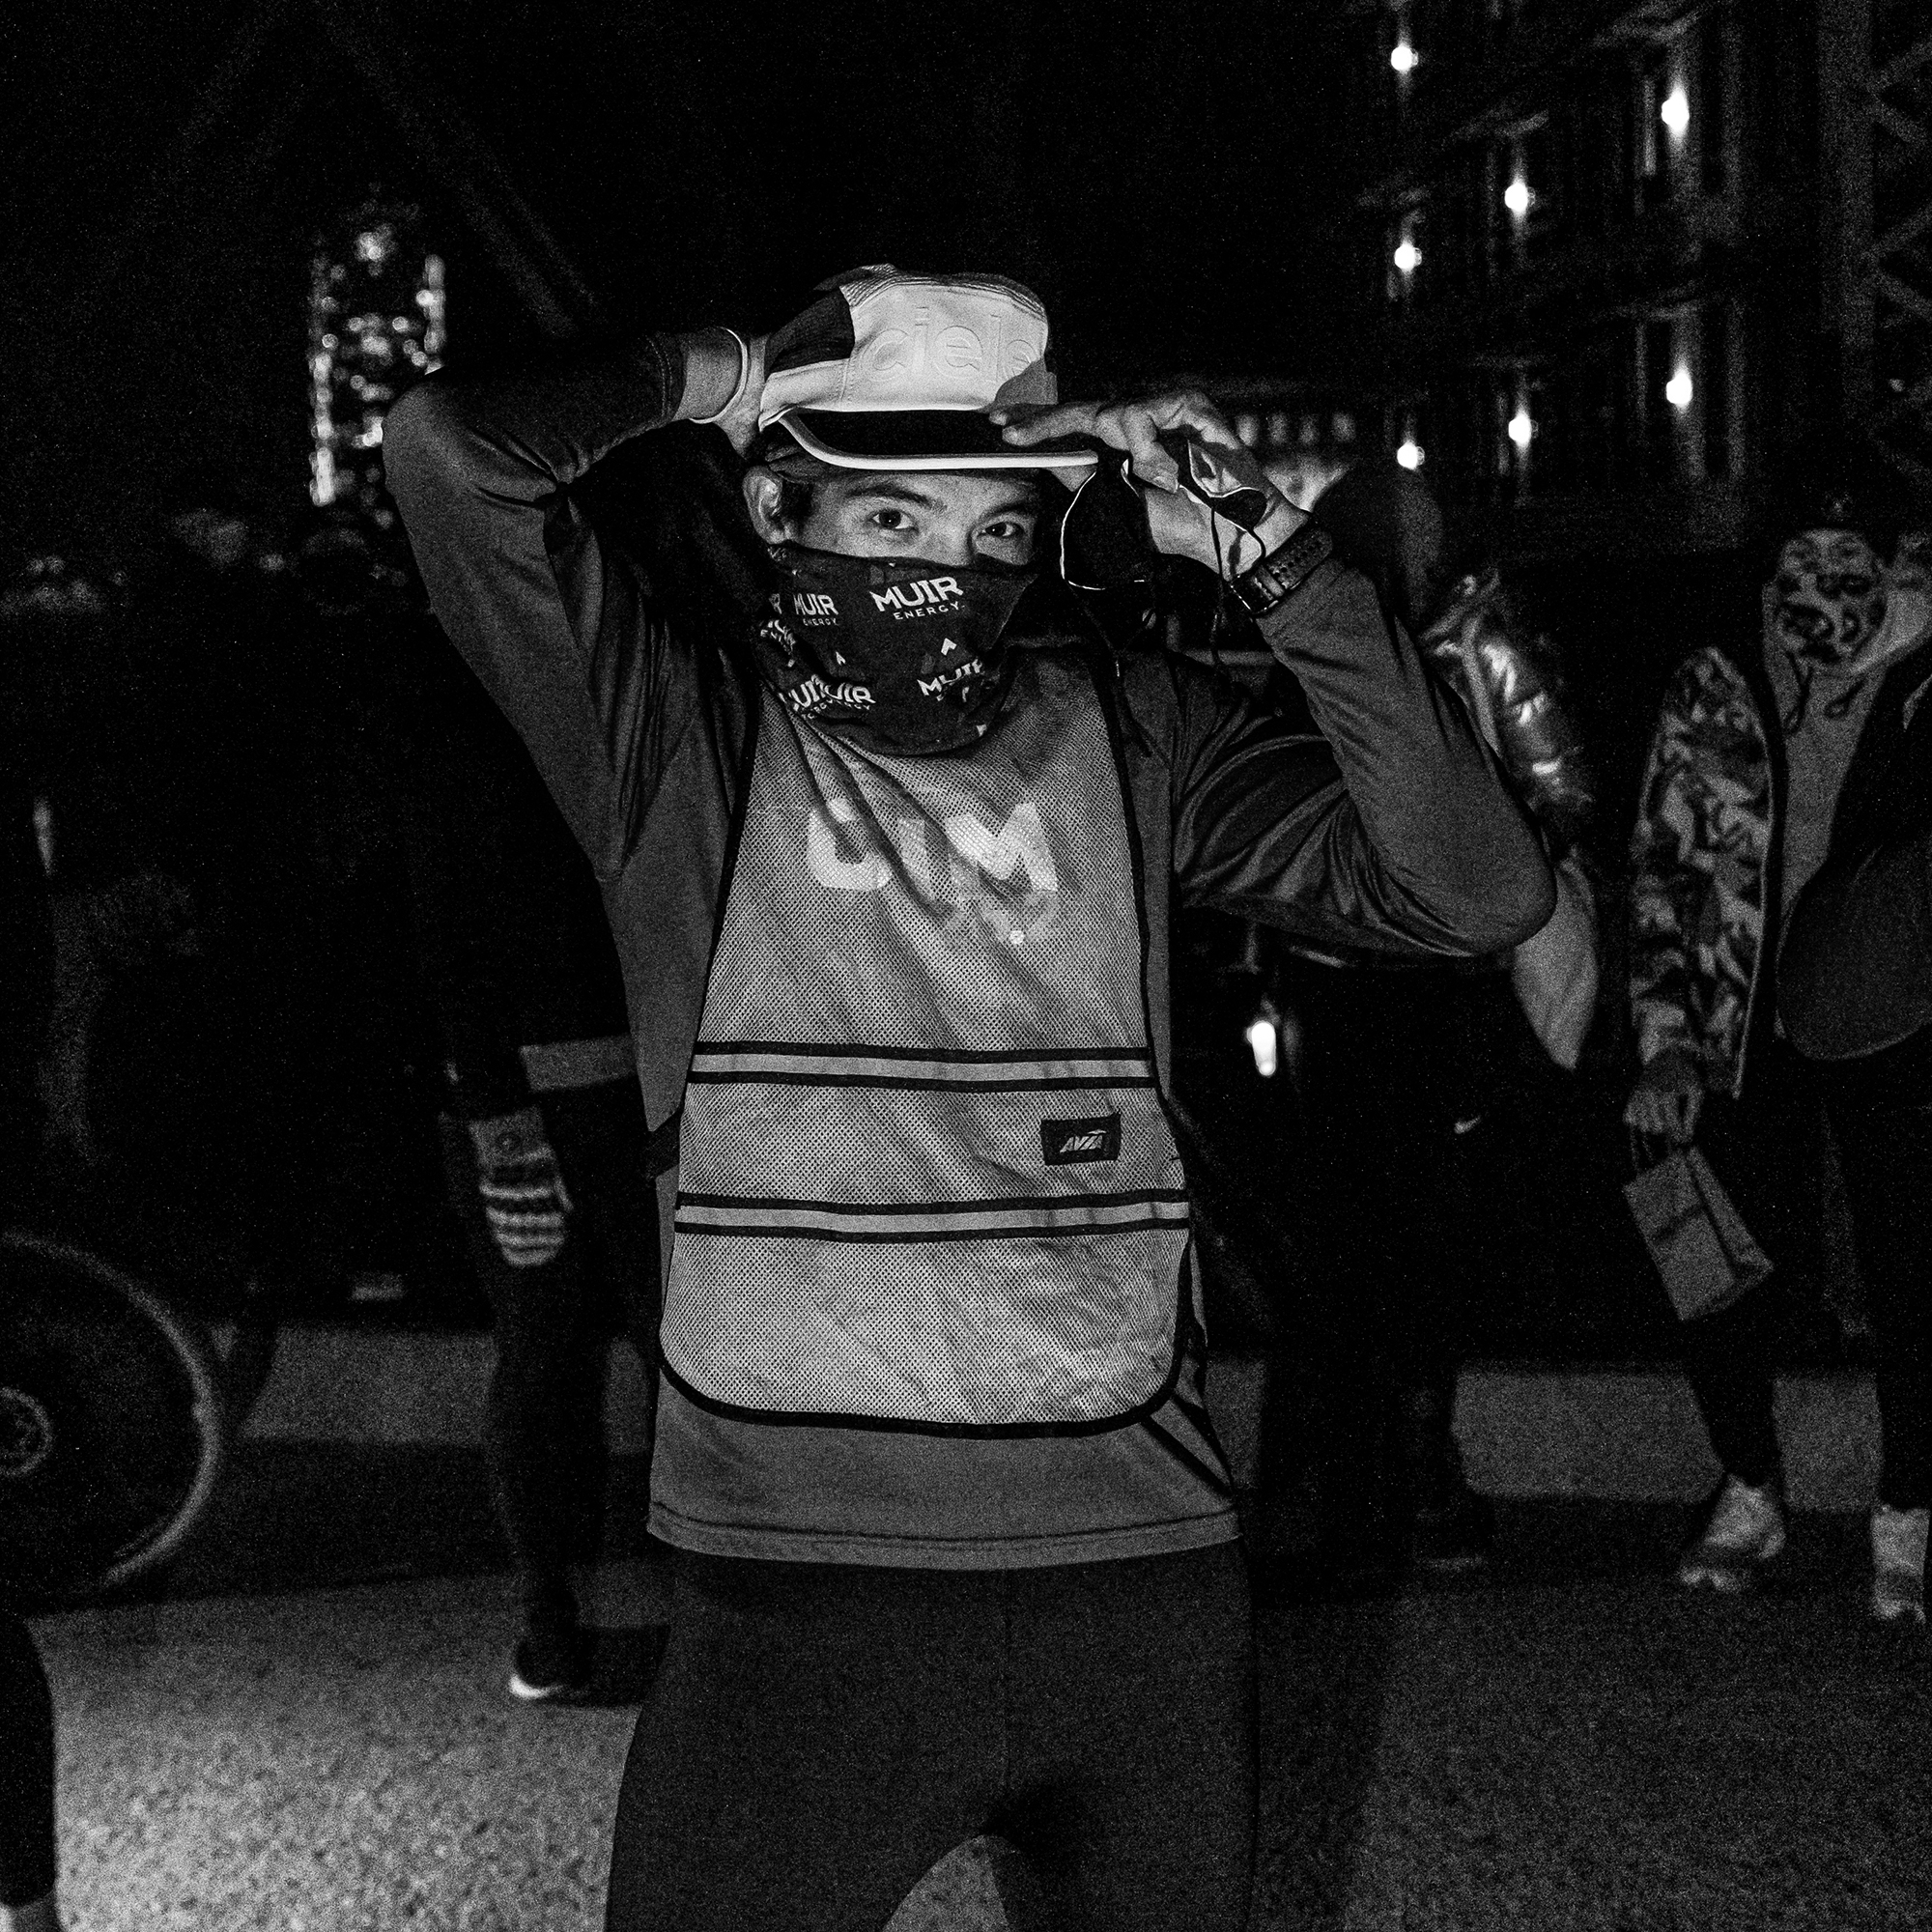 Matt Trappe photographs a masked runner looking fly in his gear for Take the Bridge in Denver